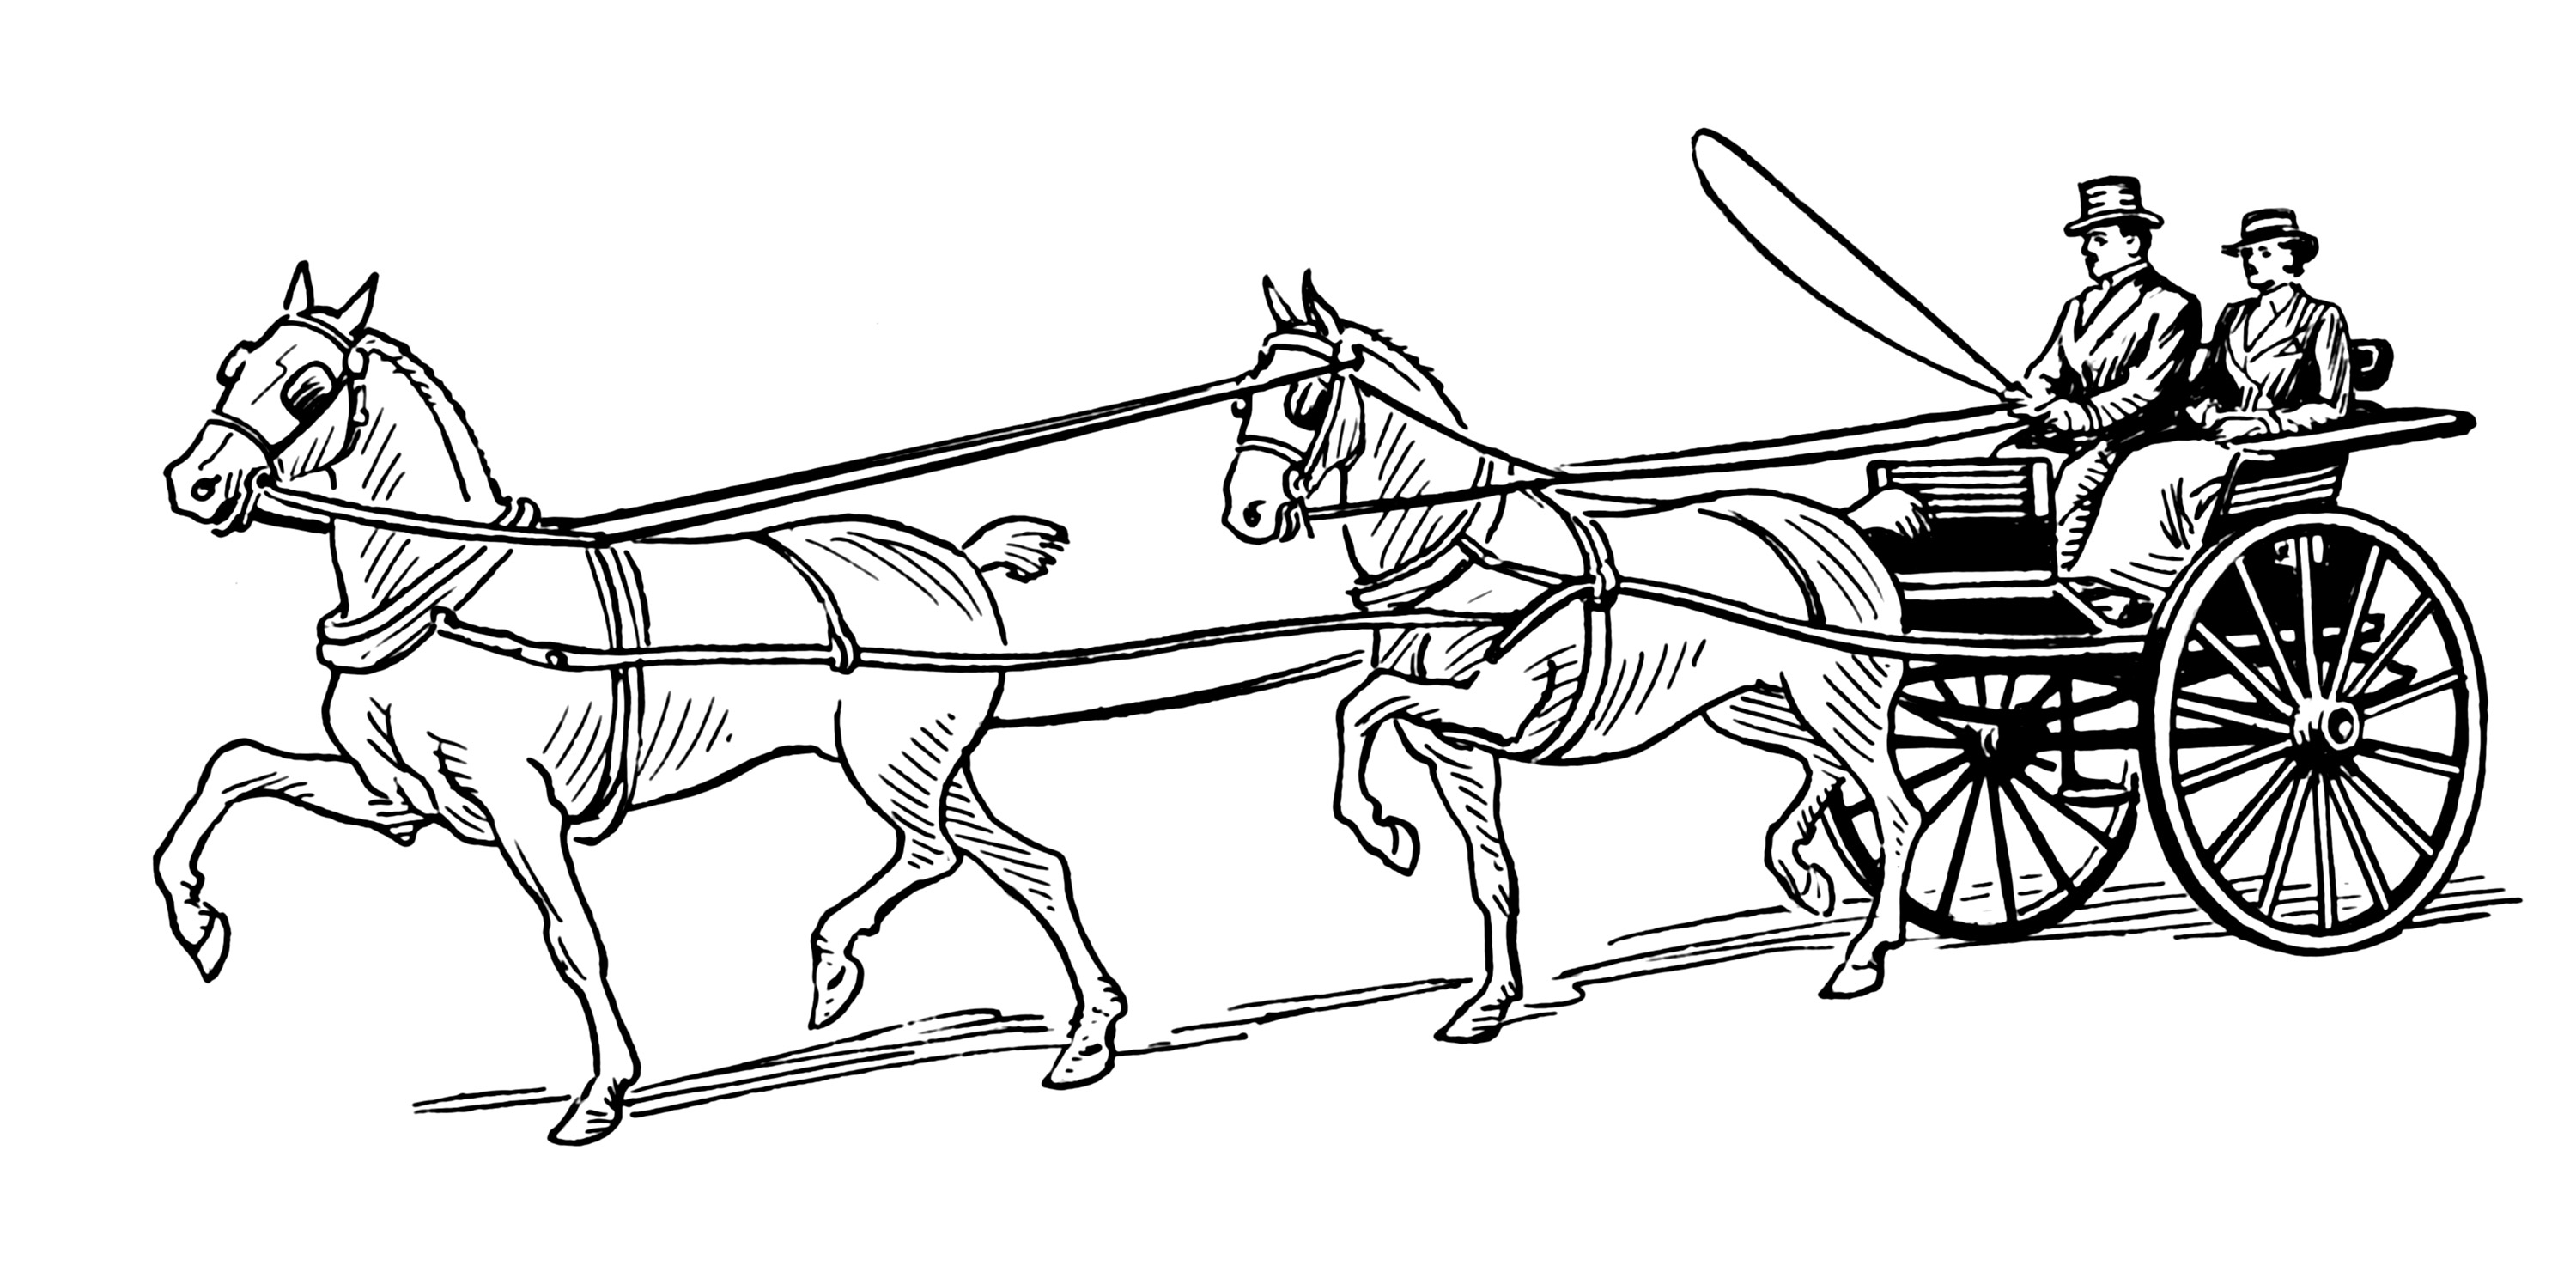 Coloring pages for horses - Horse Coloring Page